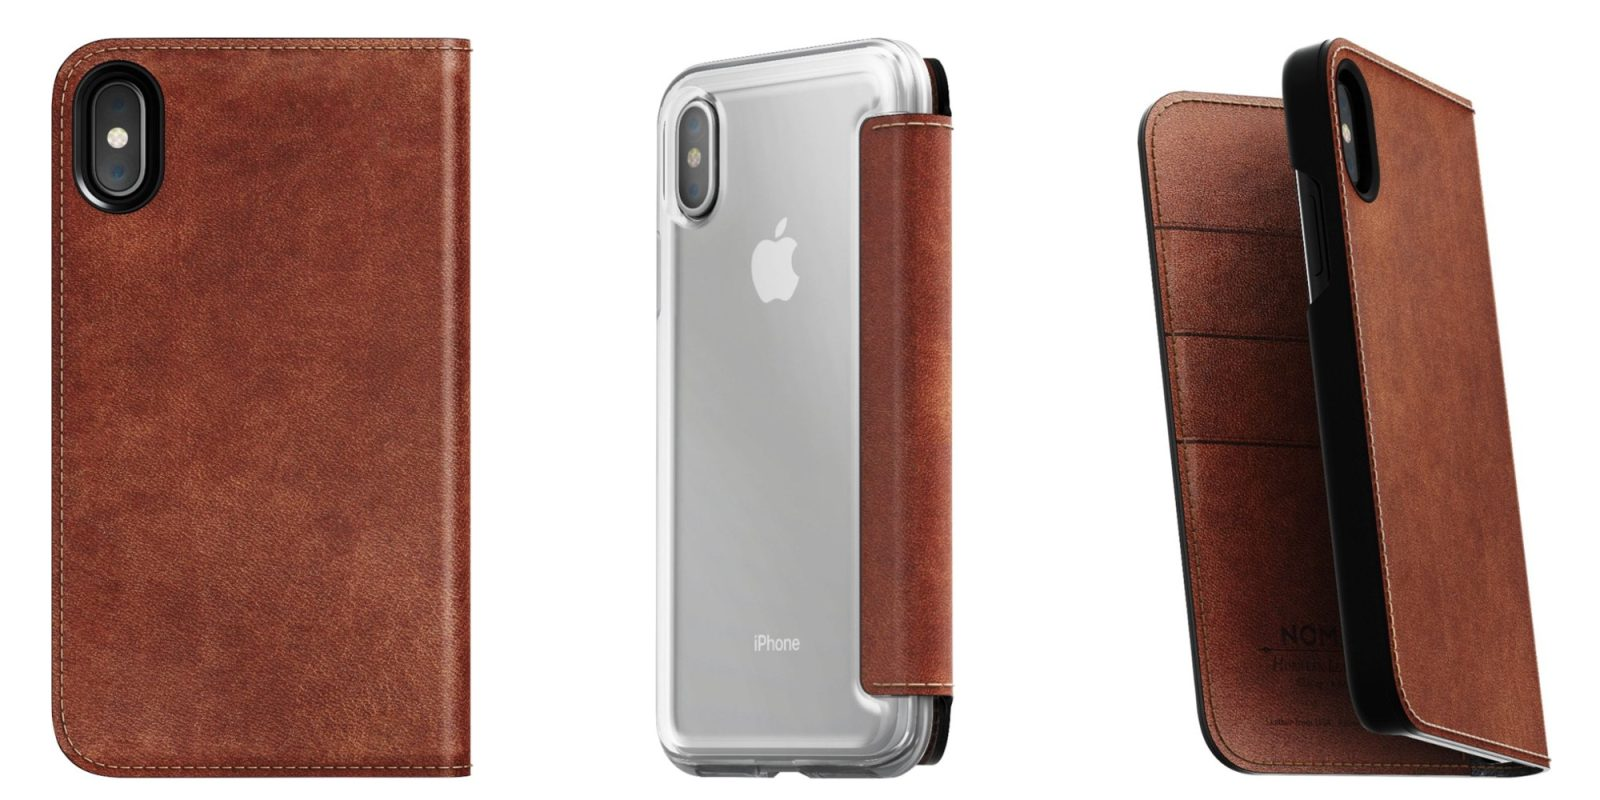 Smartphone Accessories: Nomad Genuine Leather Folio iPhone X/S Wallet Cases $20, more